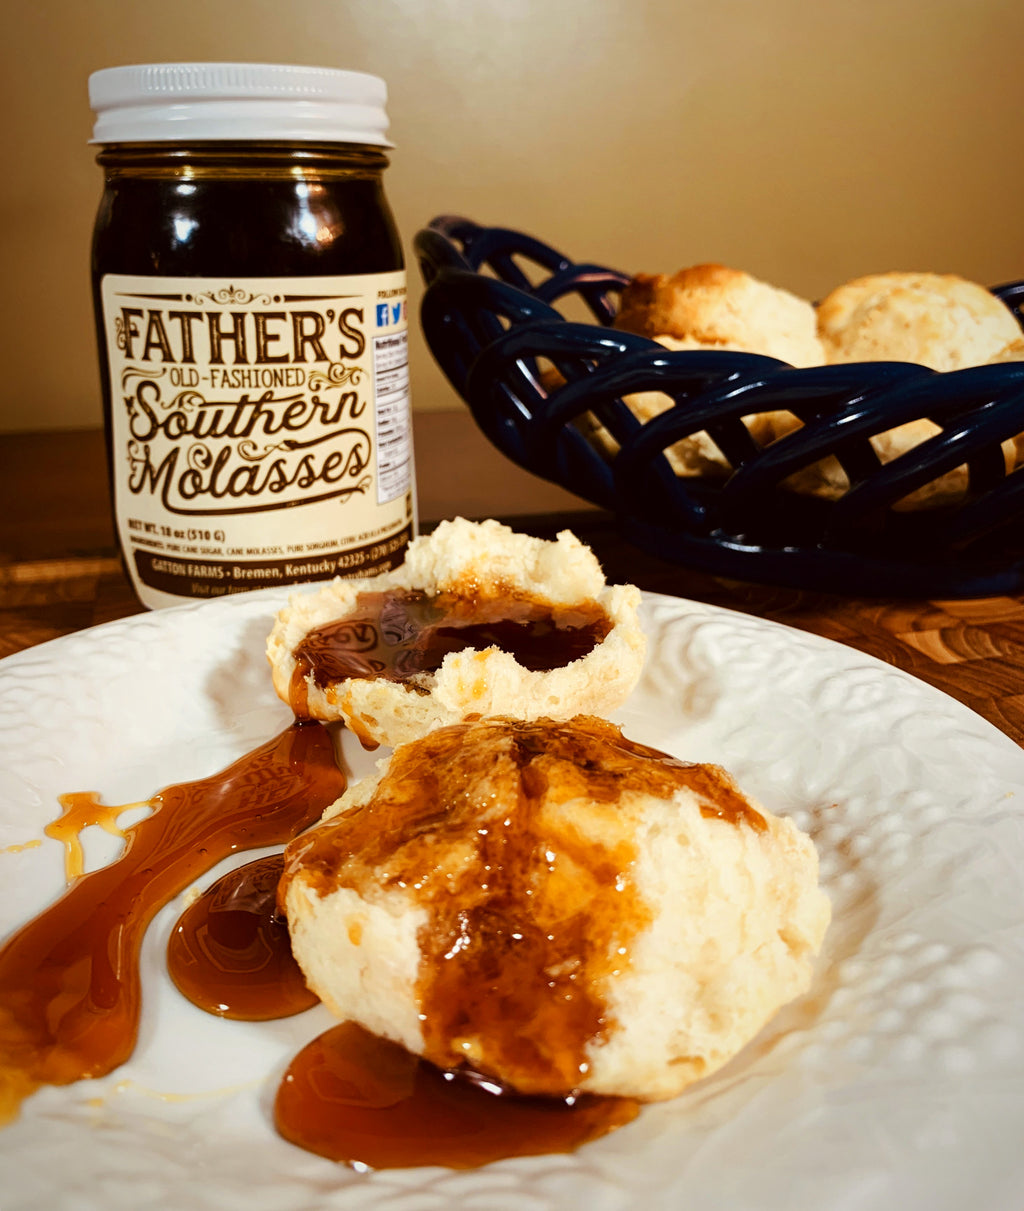 #6 Father's Kentucky Country Breakfast - FB